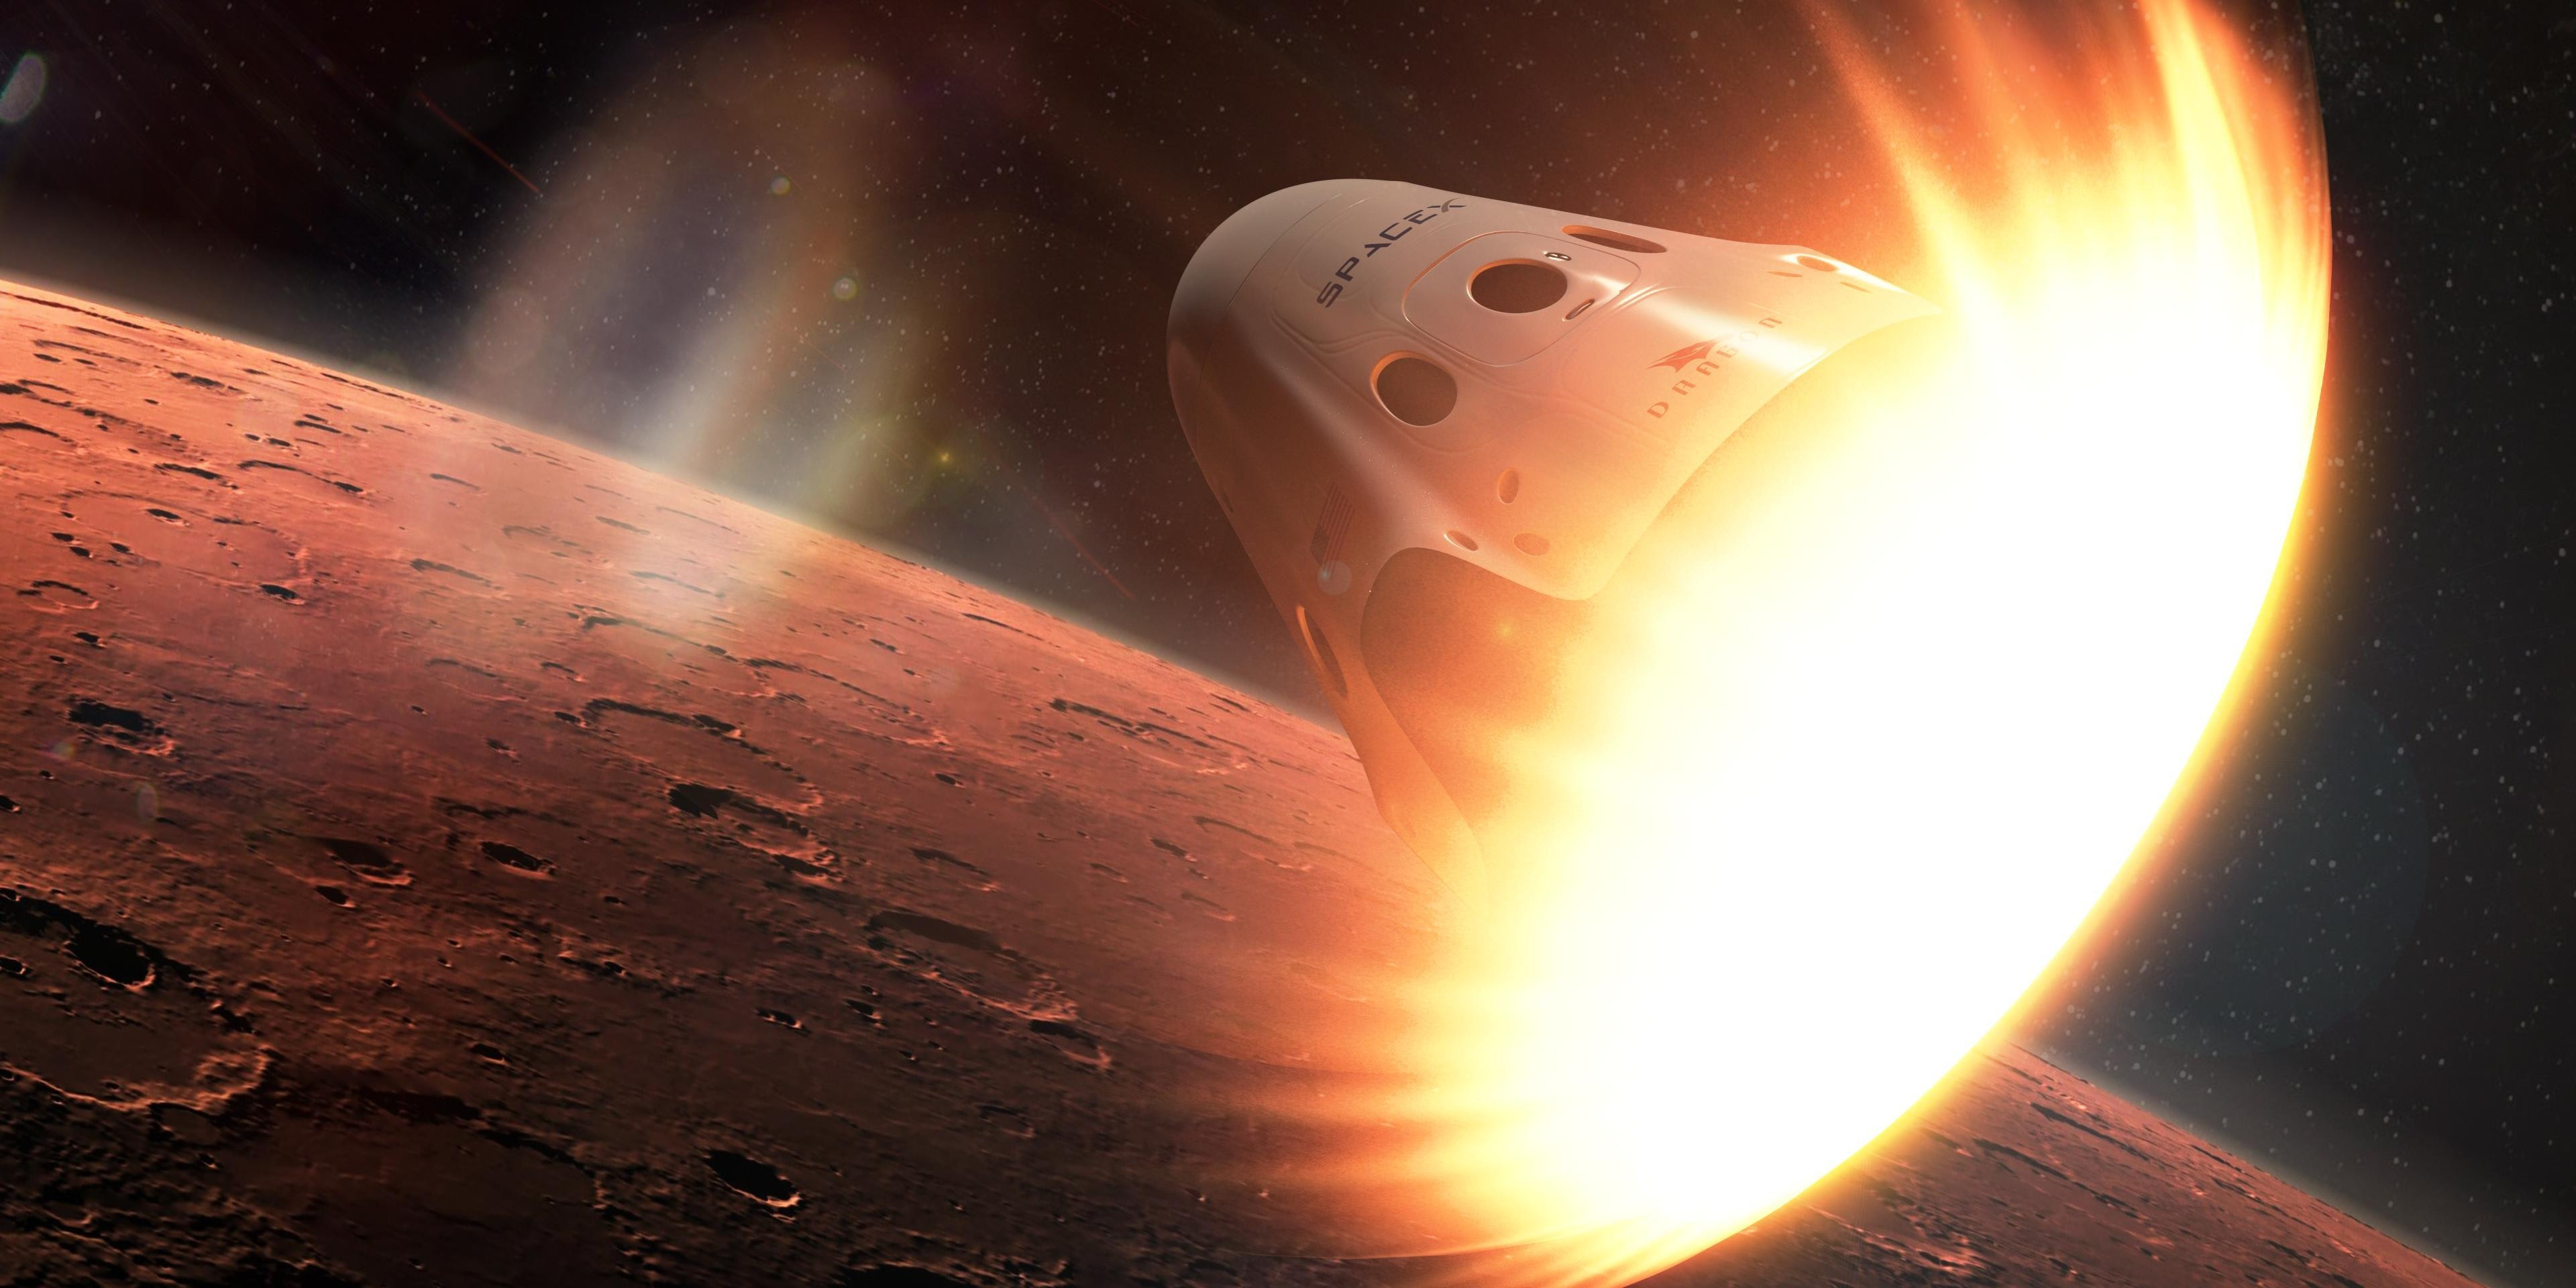 Elon Musk Unveils SpaceX's Timeline for Sending People to Mars